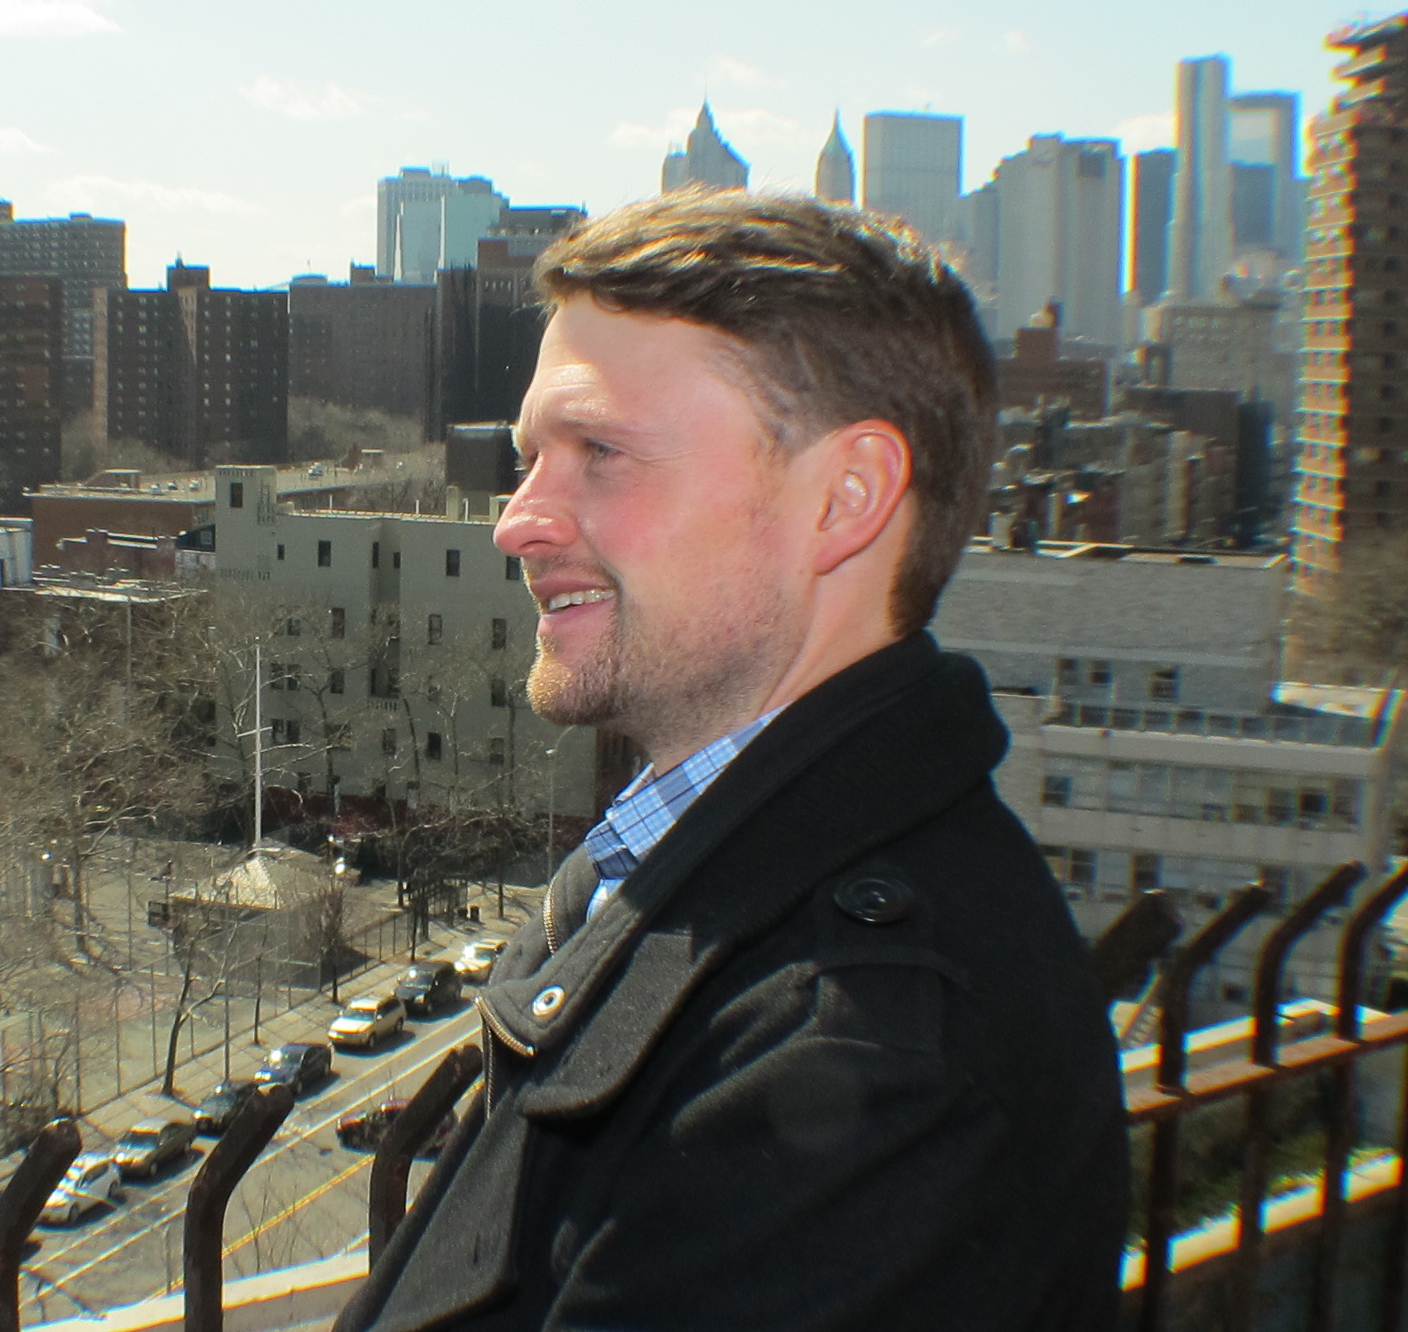 JASON PERCY THE SOHO BUILDING  110 GREENE STREET, SUITE 503 NEW YORK, NY 10012  JASON@STARCITIES.COM M  508-728-0508   O  917-464-5662    F  866-599-9704 WWW.STARCITES.COM